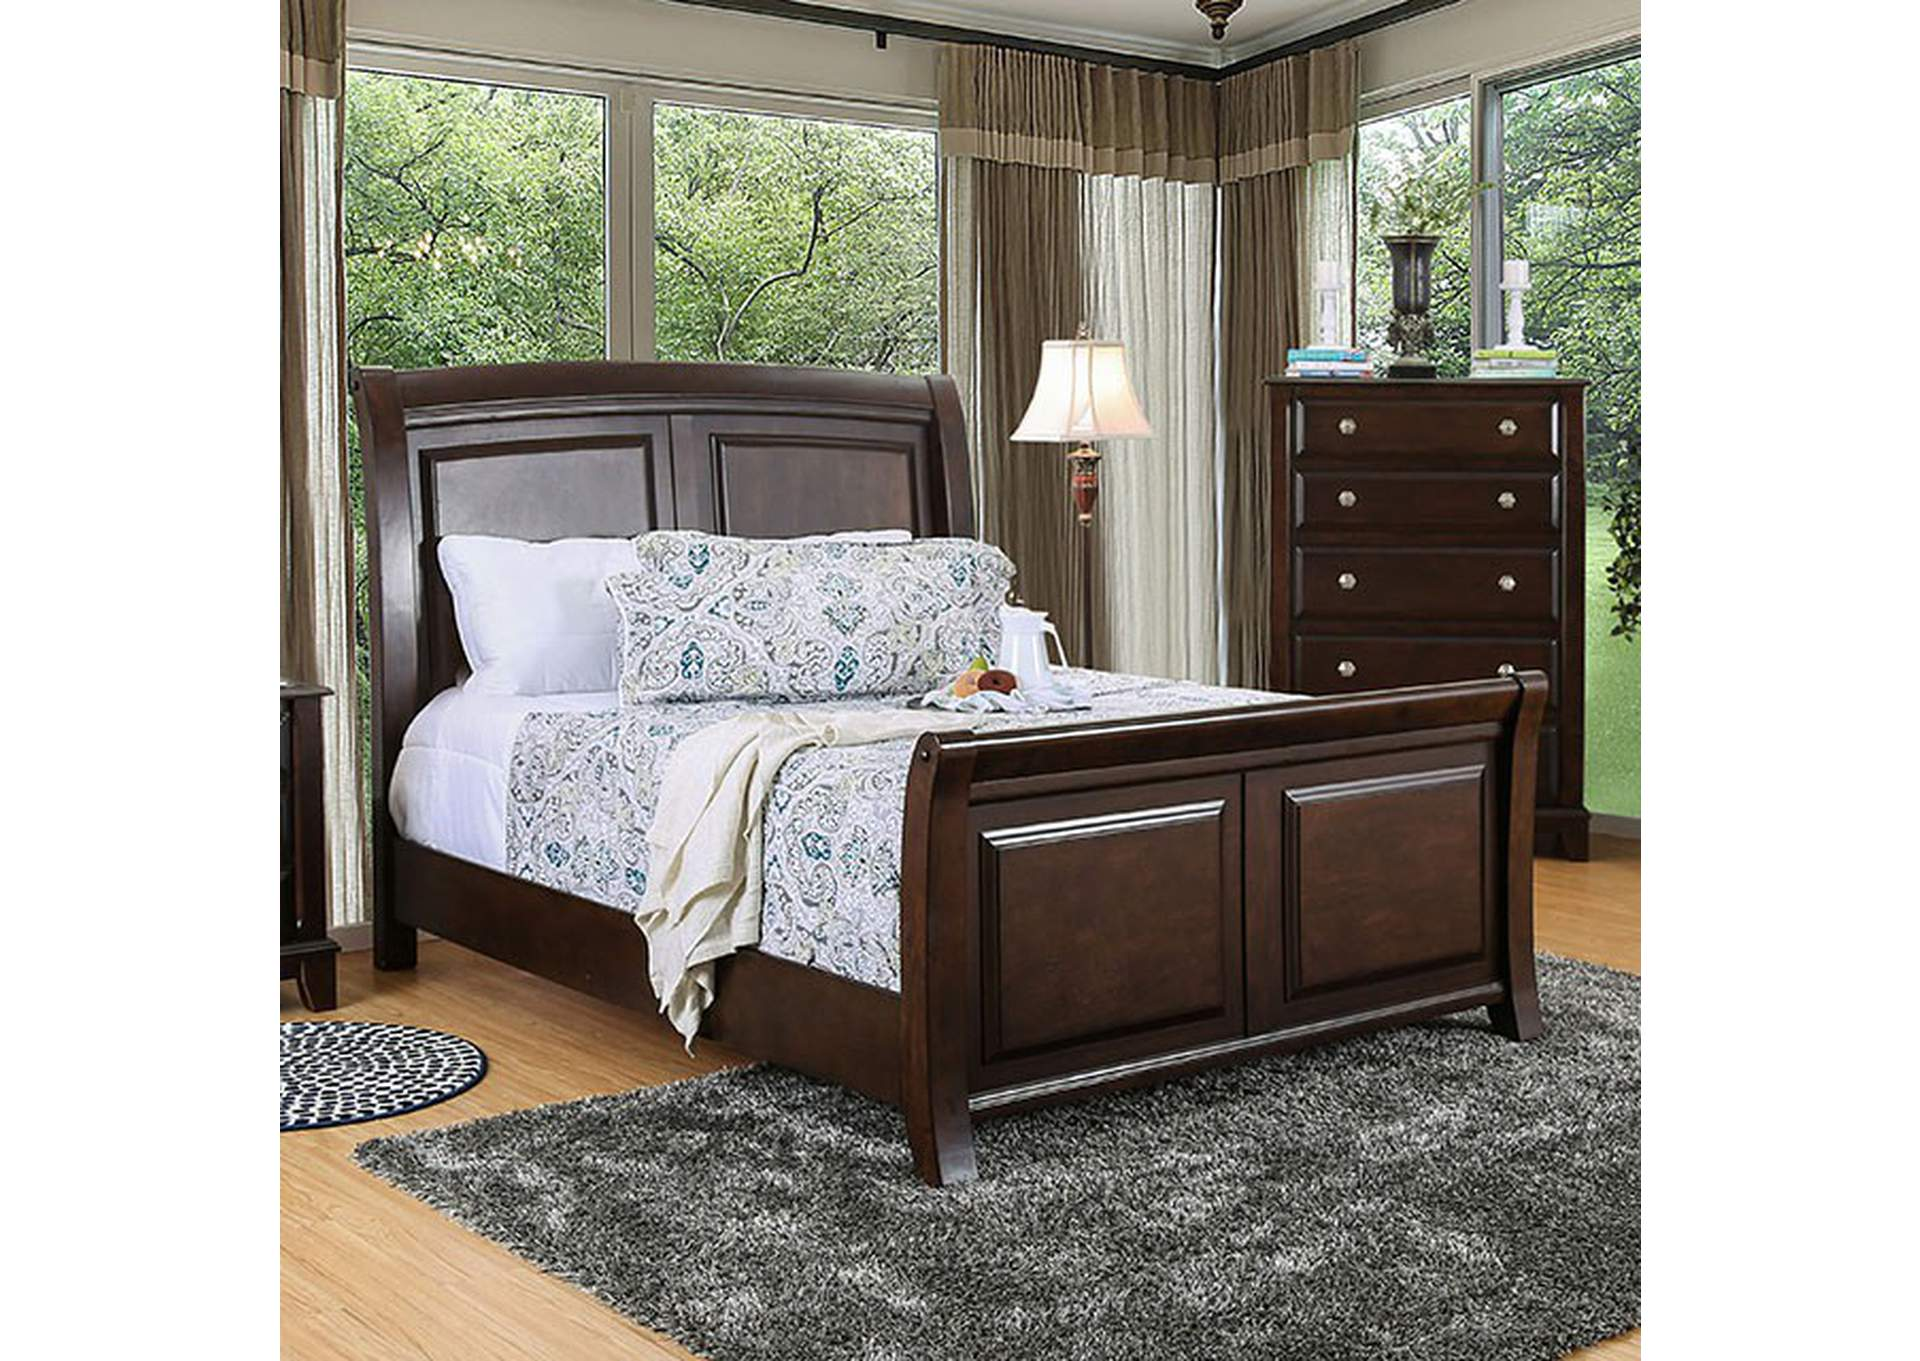 Litchville Brown Cherry Eastern King Bed Best Buy Furniture And Mattress